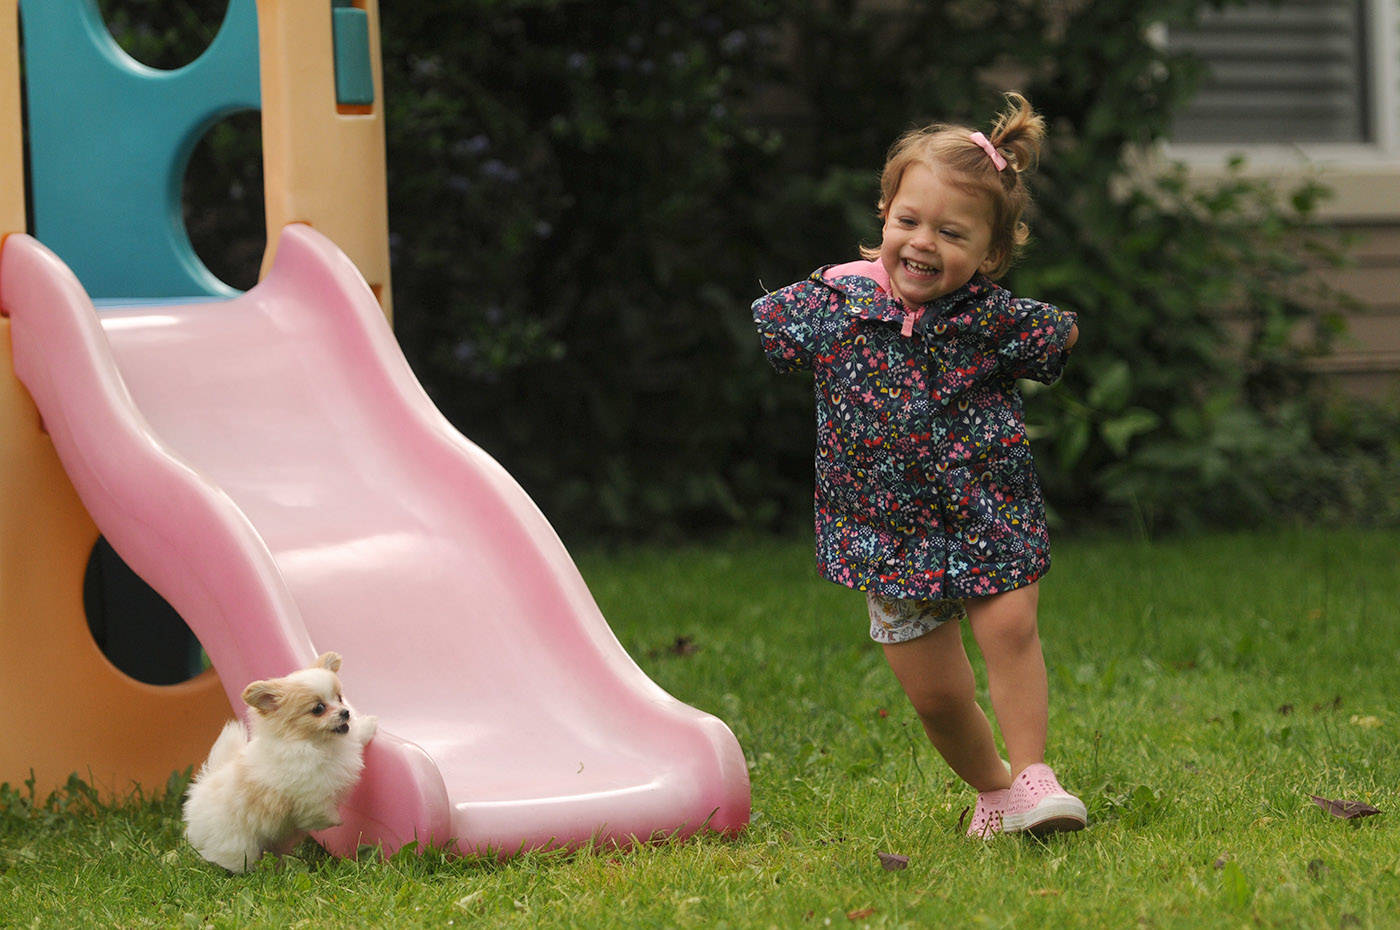 Two-year-old Ivy McLeod laughs while playing with Lucky the puppy outside their Chilliwack home on Thursday, June 10, 2021. (Jenna Hauck/ Chilliwack Progress)